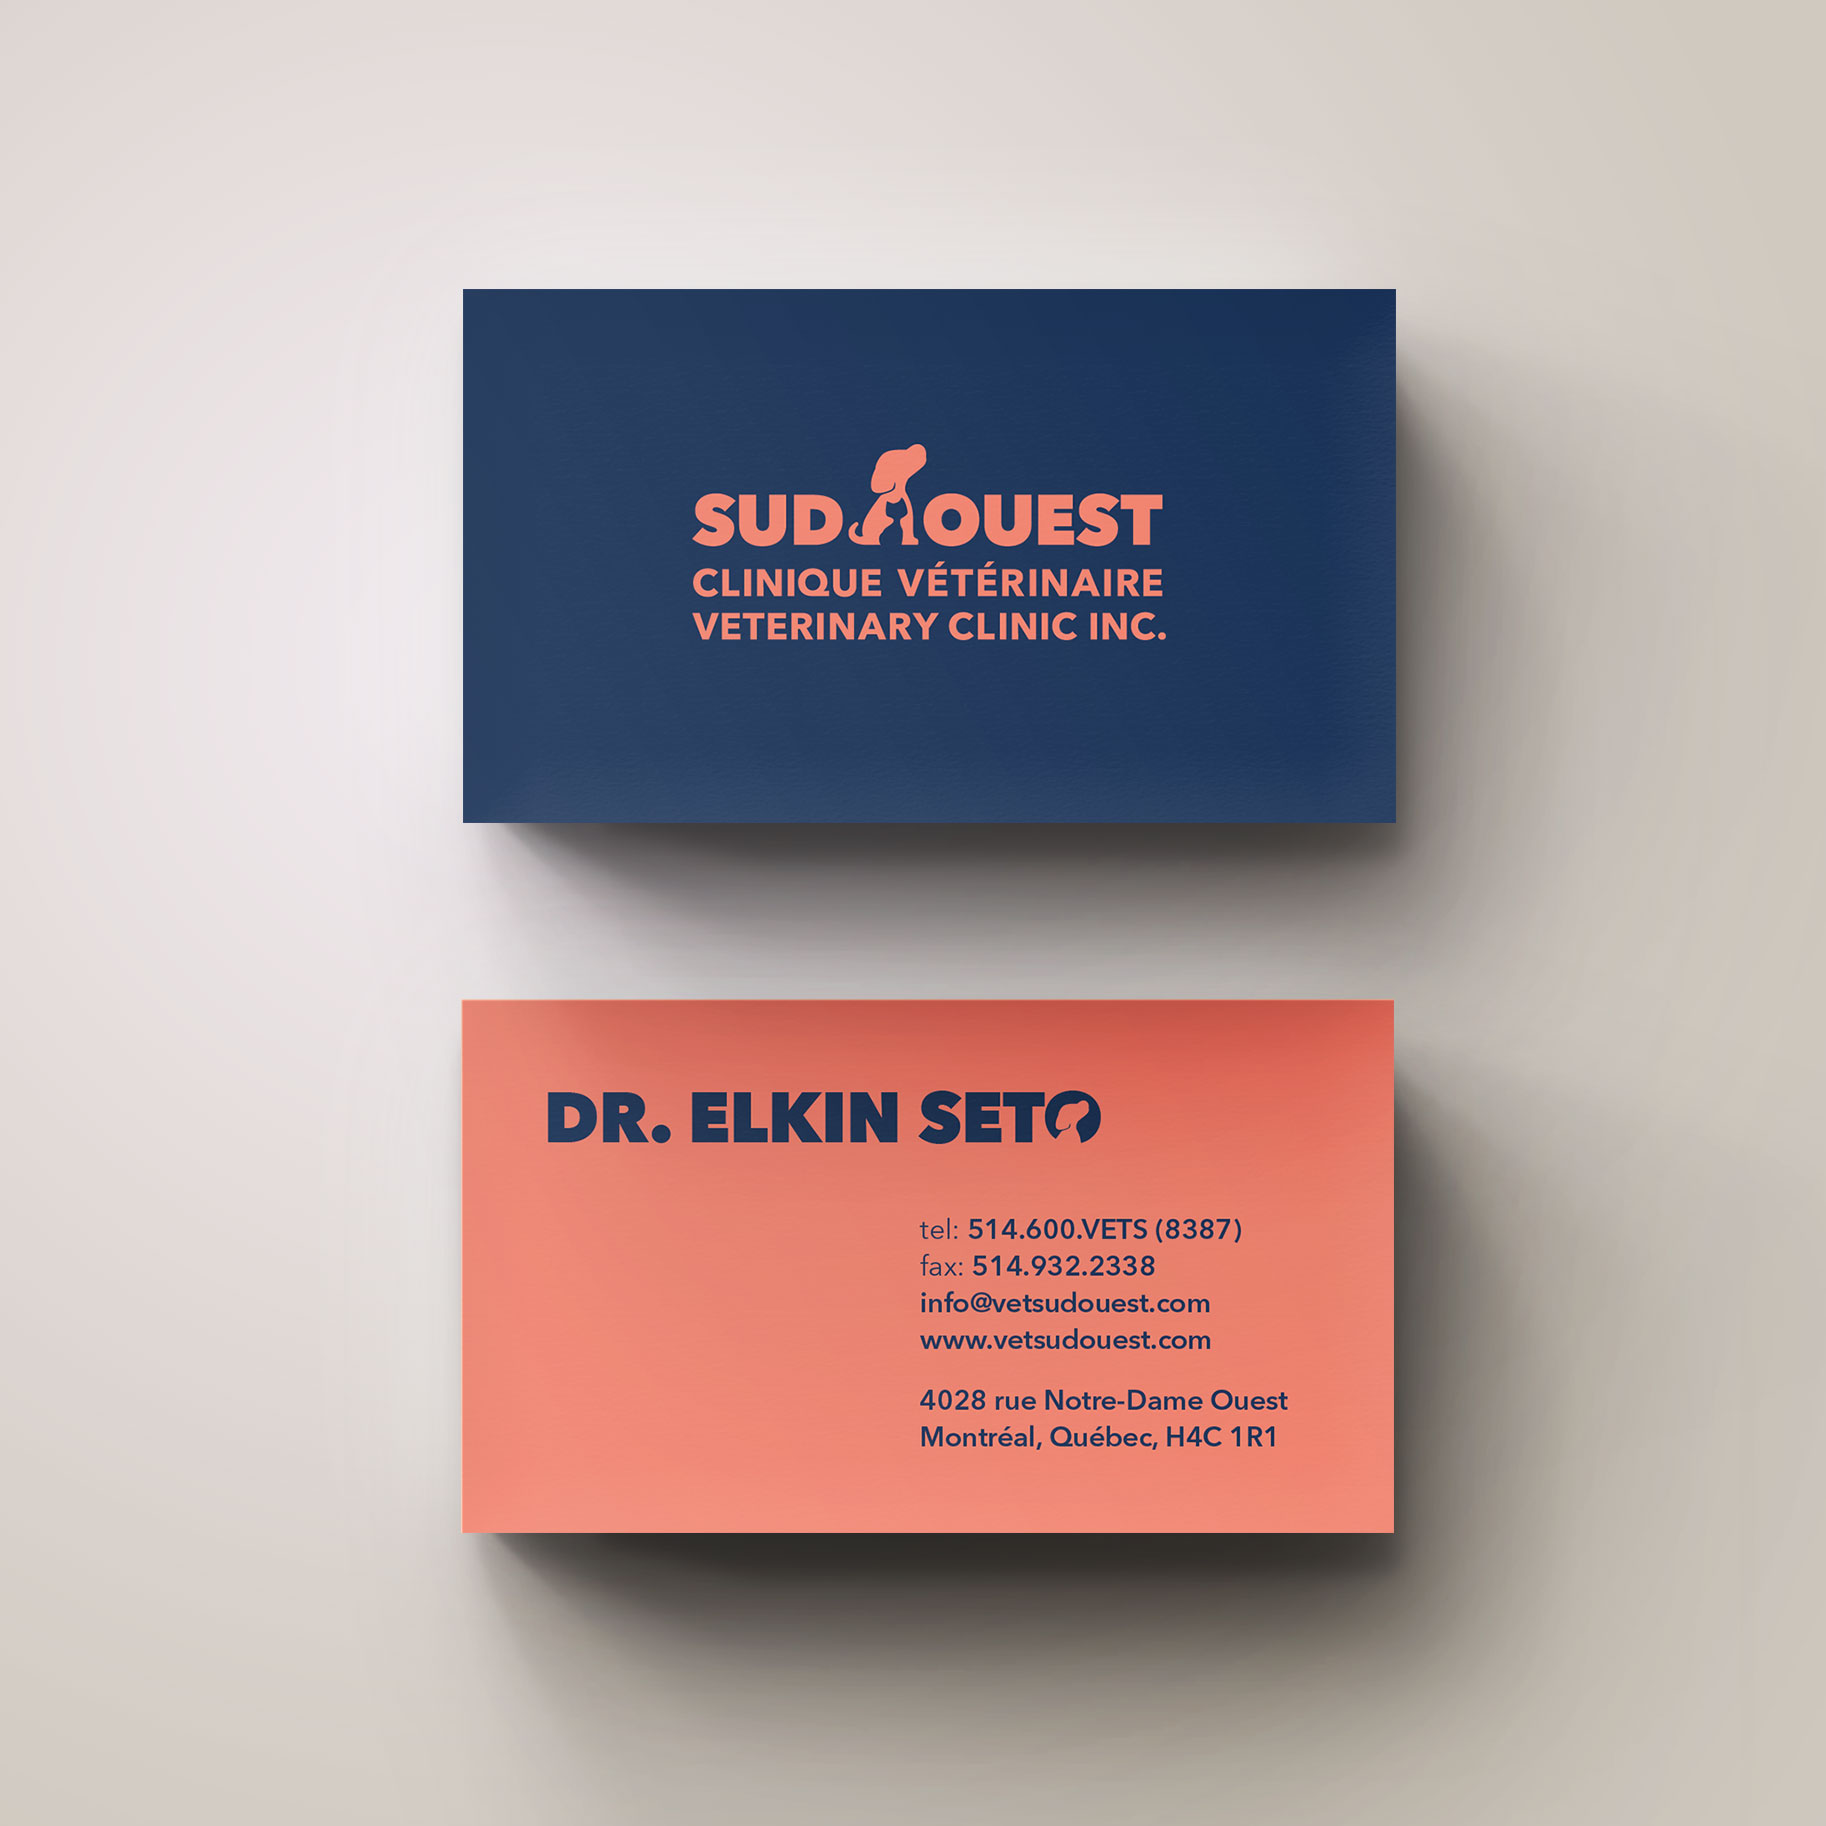 the alternate business cards